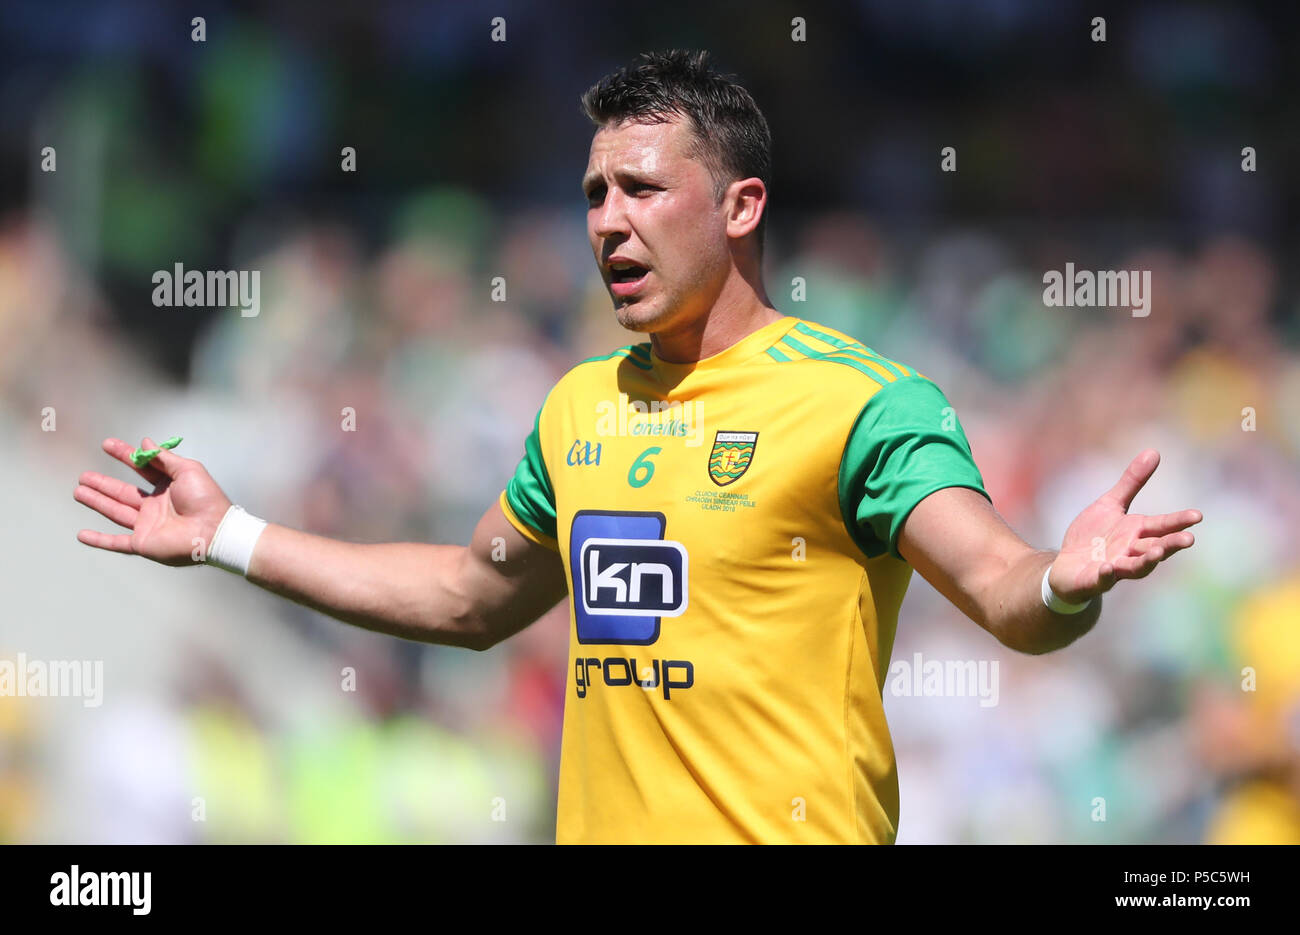 Donegal's Paul Brennan during the GAA Ulster Final in Clones, Co Monaghan, Ireland. - Stock Image